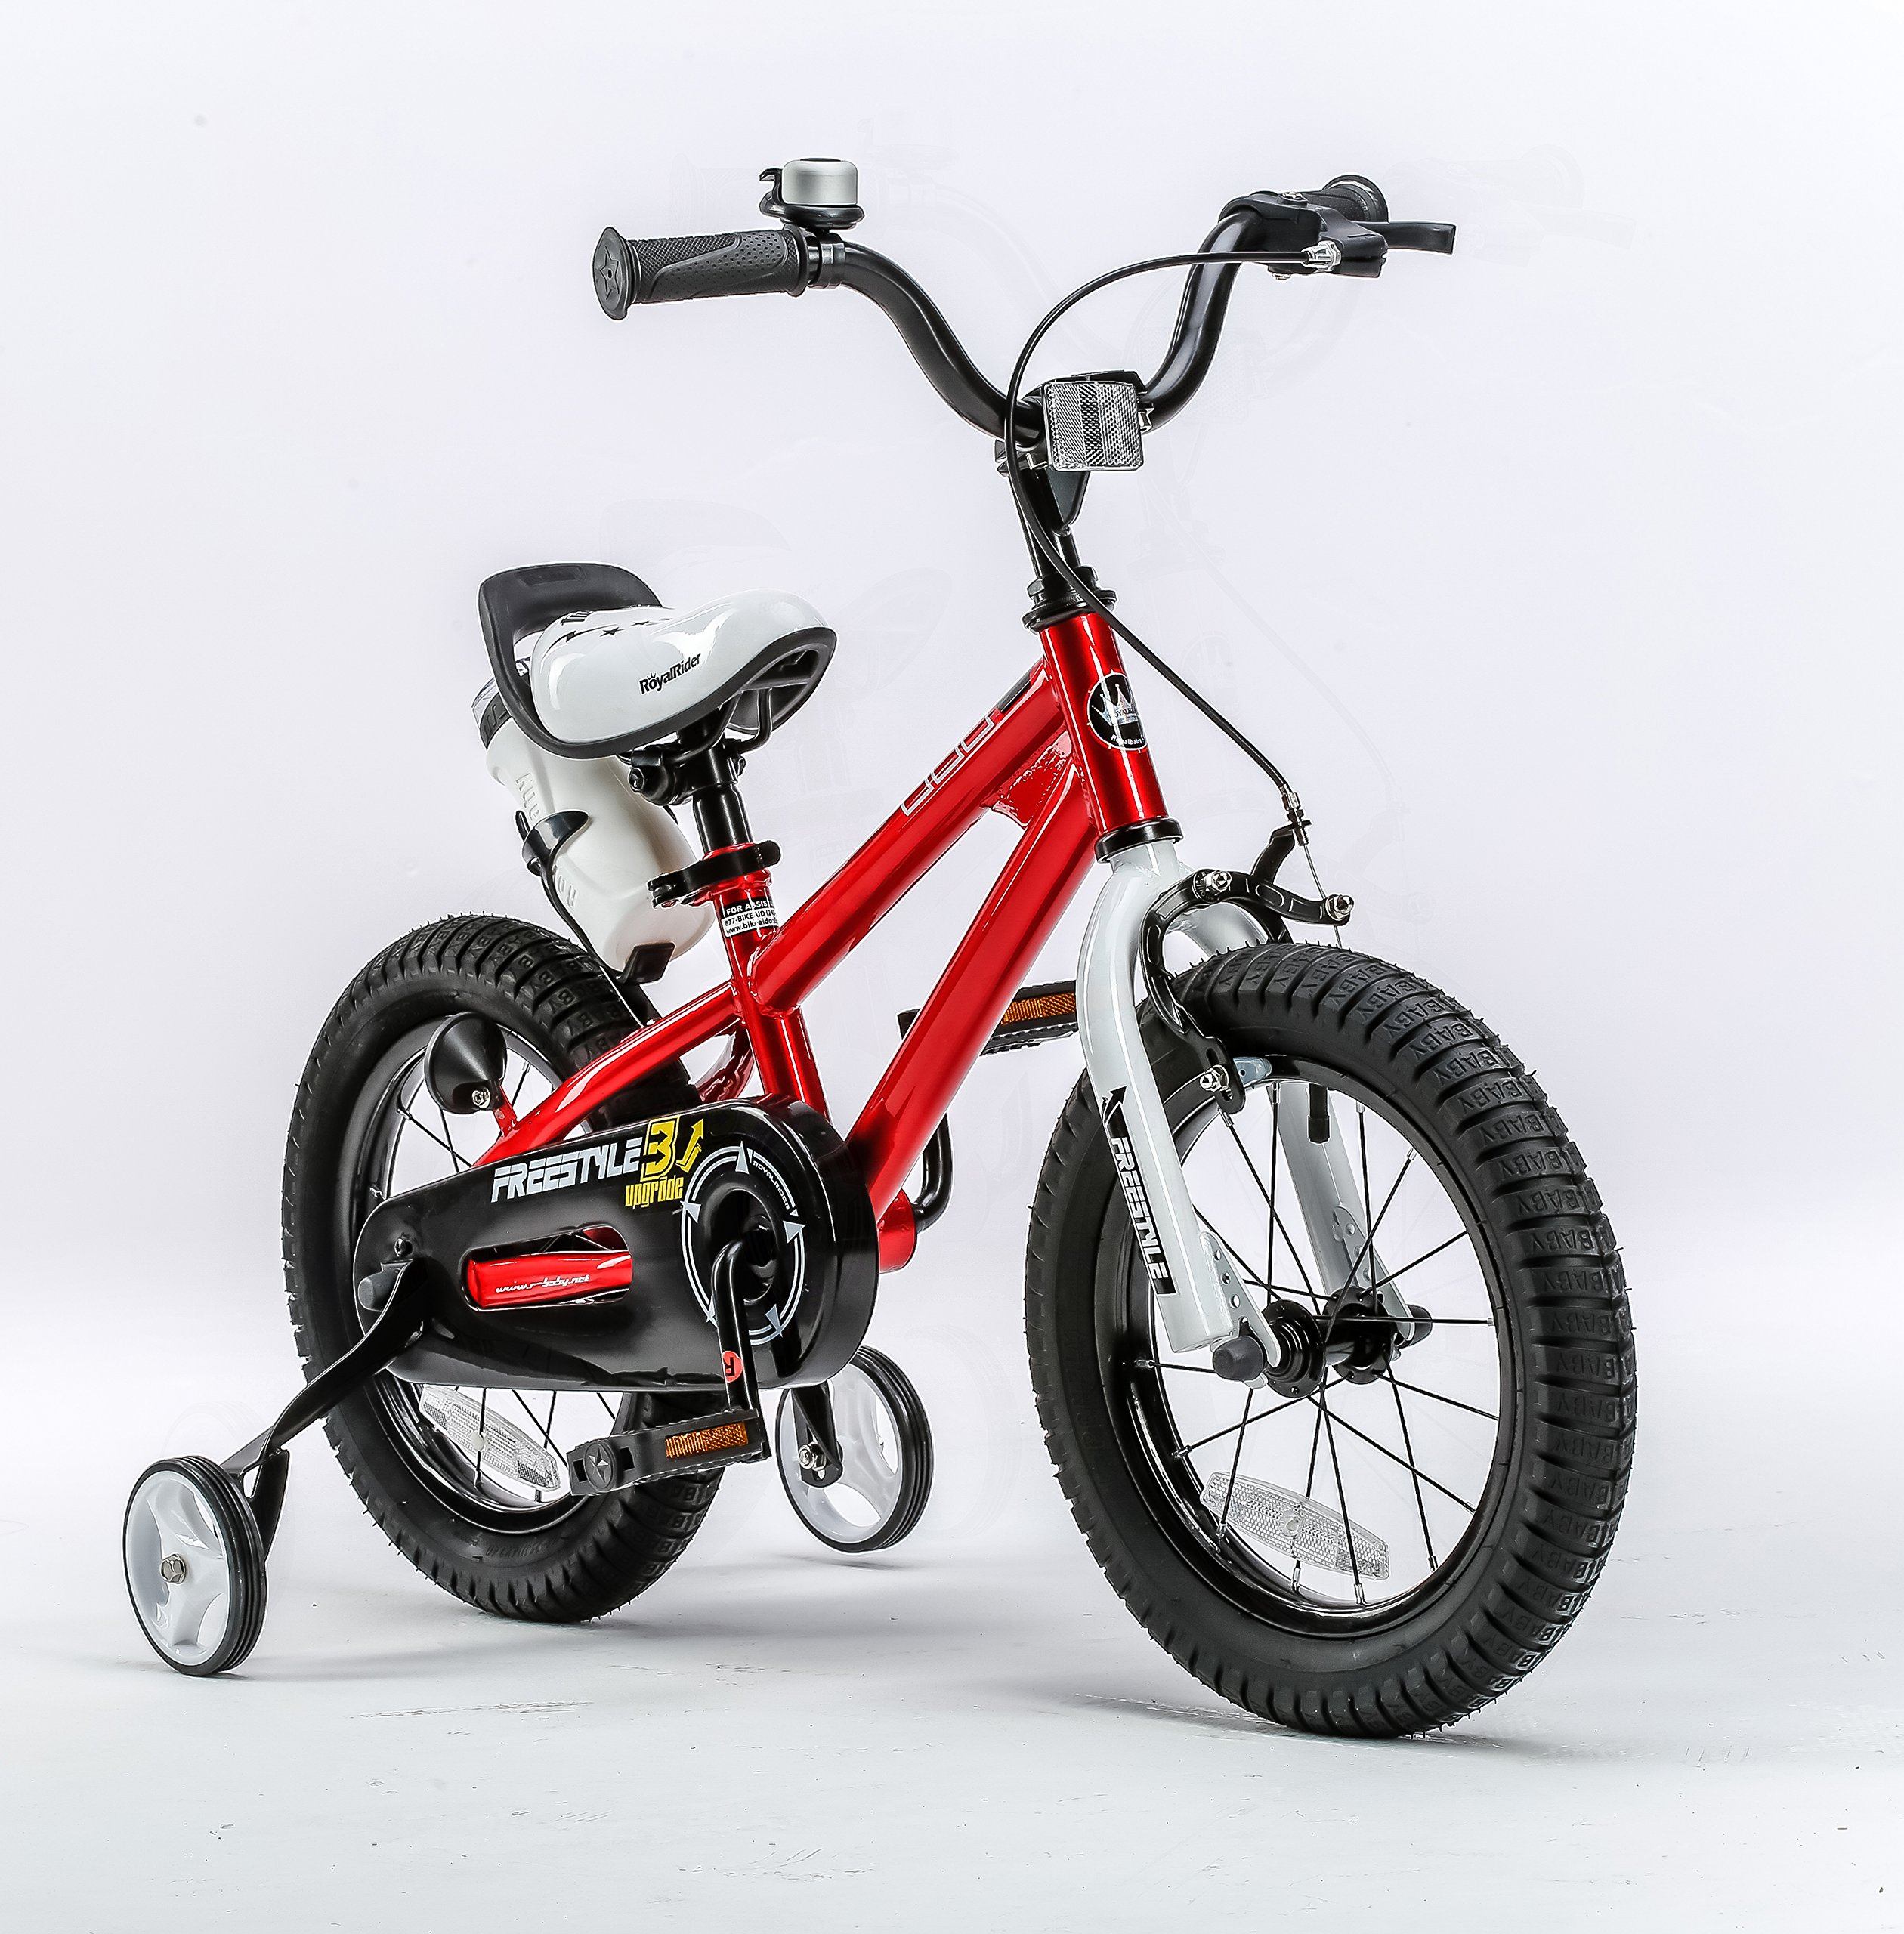 RoyalBaby BMX Freestyle Kids Bike, Boy's Bikes and Girl's Bikes with training wheels, 12 inch, 14 inch, 16 inch, 18 inch, Gifts for children by Royalbaby (Image #4)